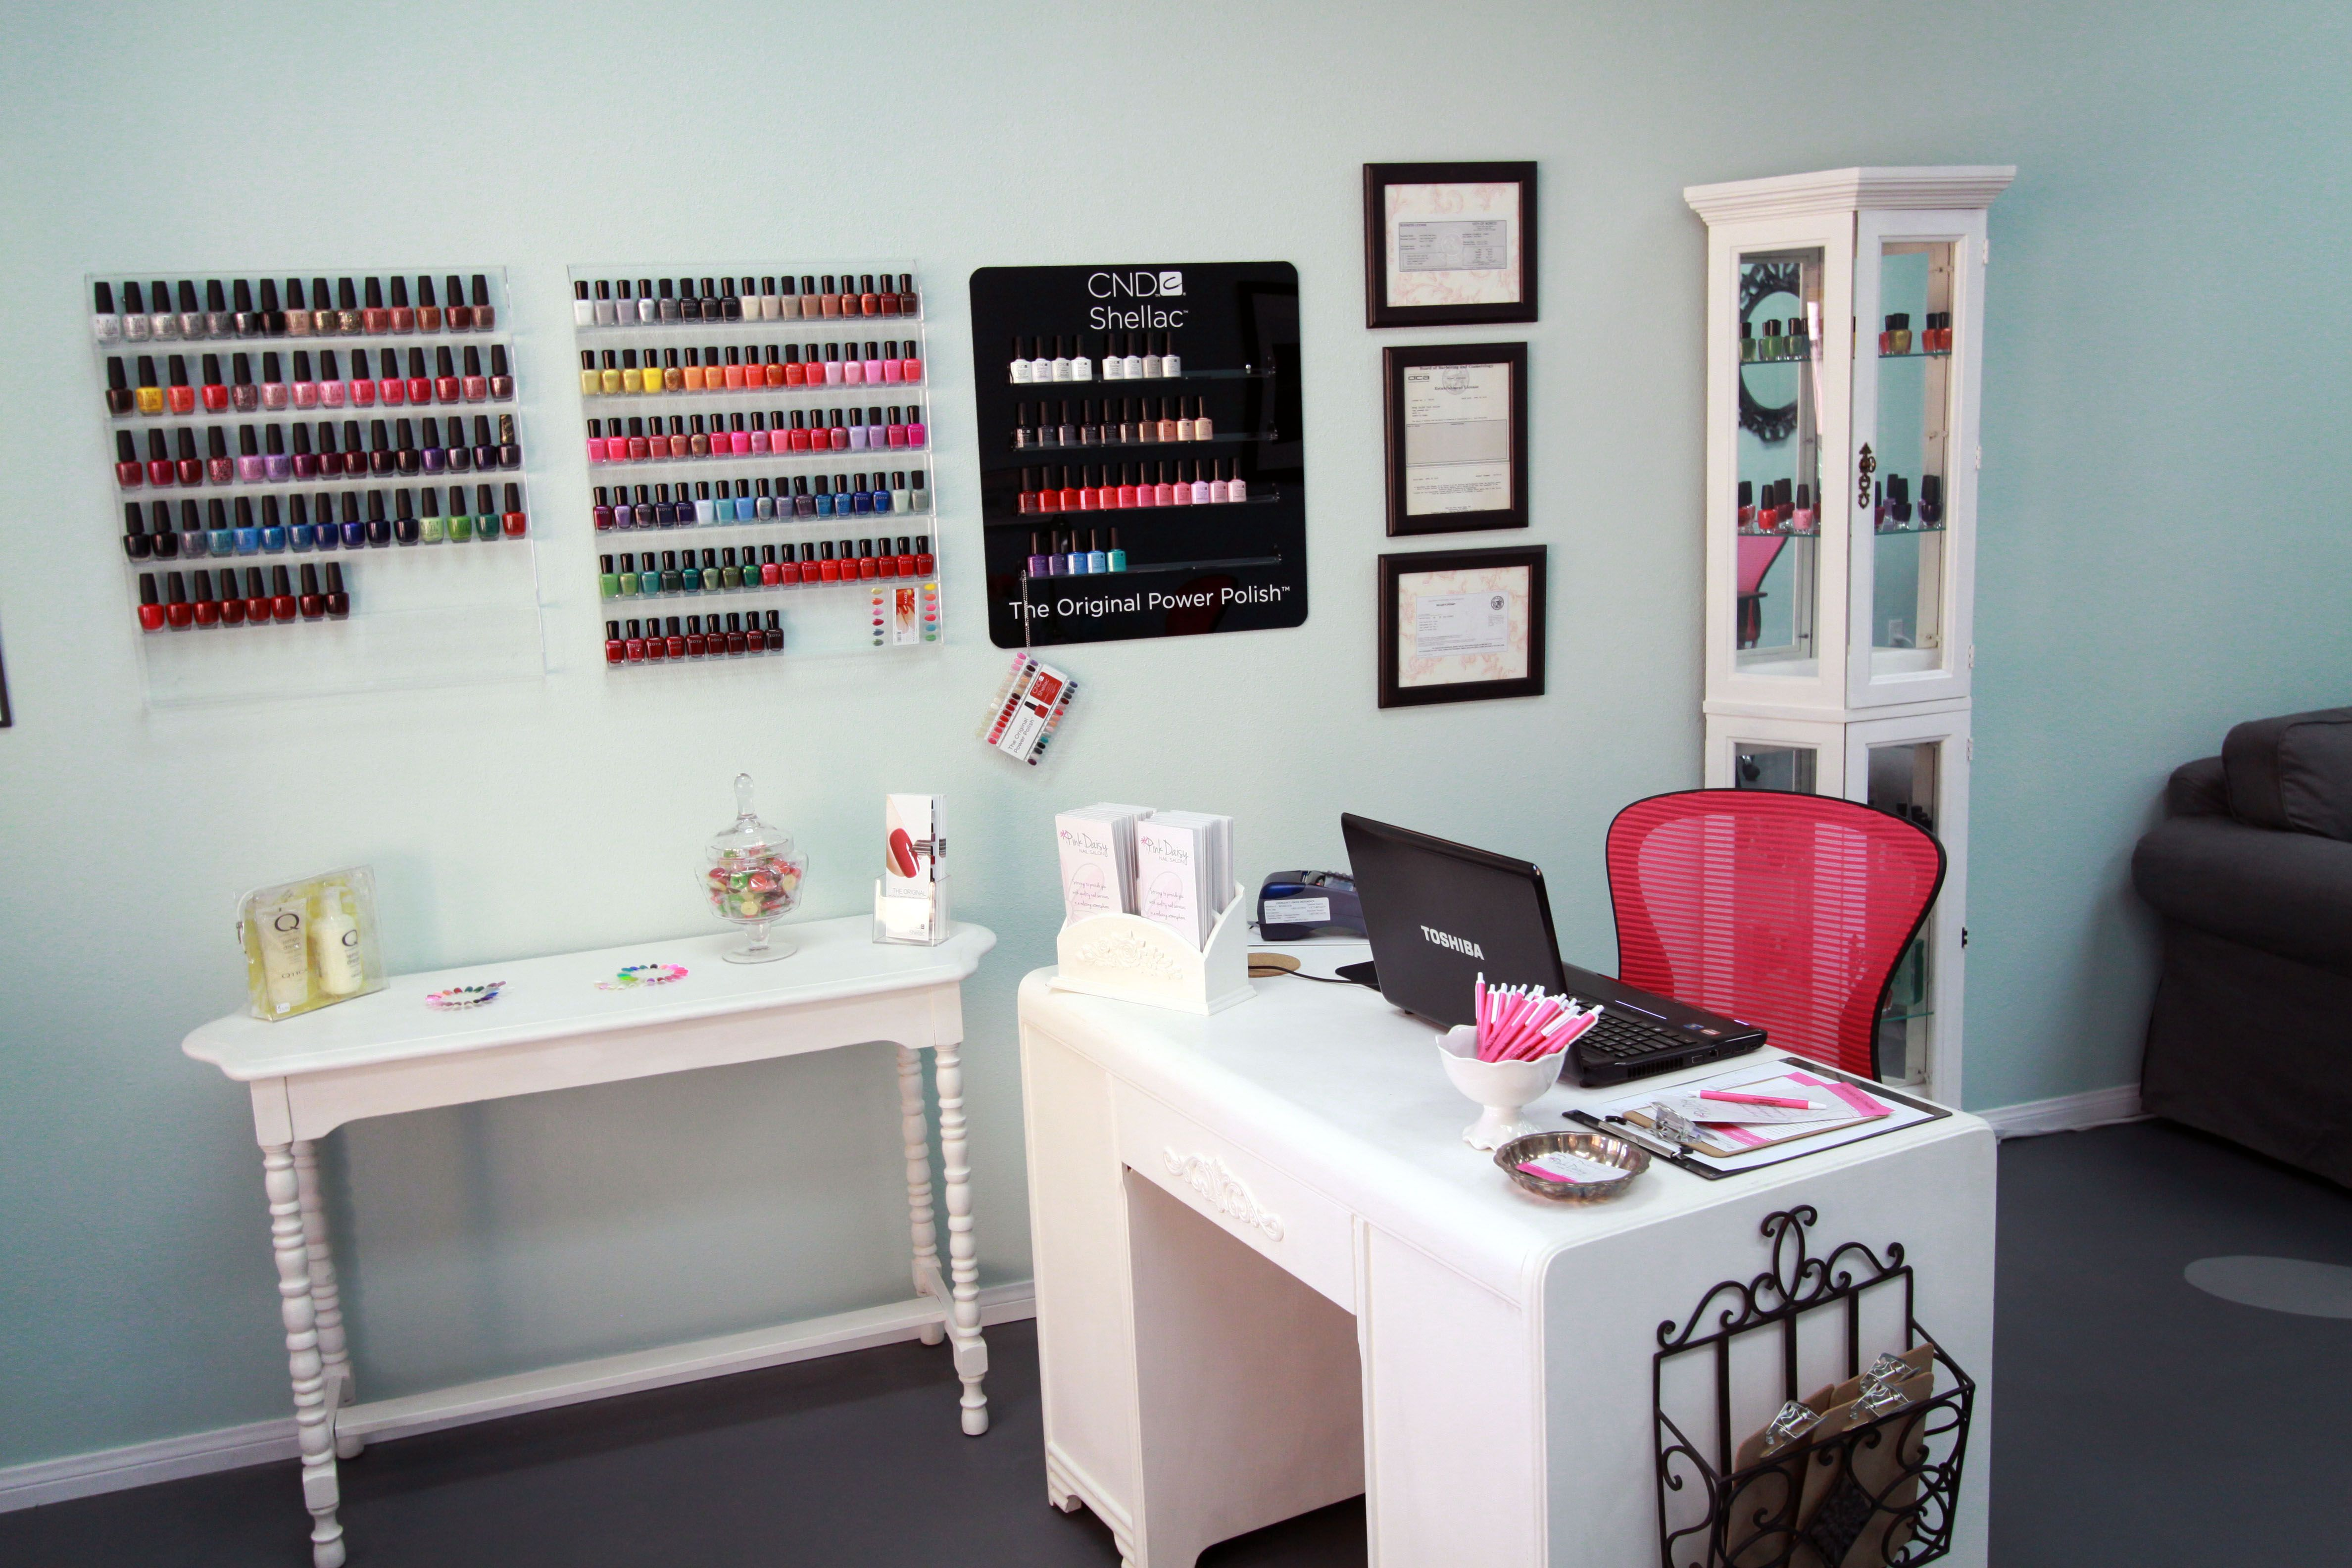 Pink Daisy Nail Salon front desk and reception